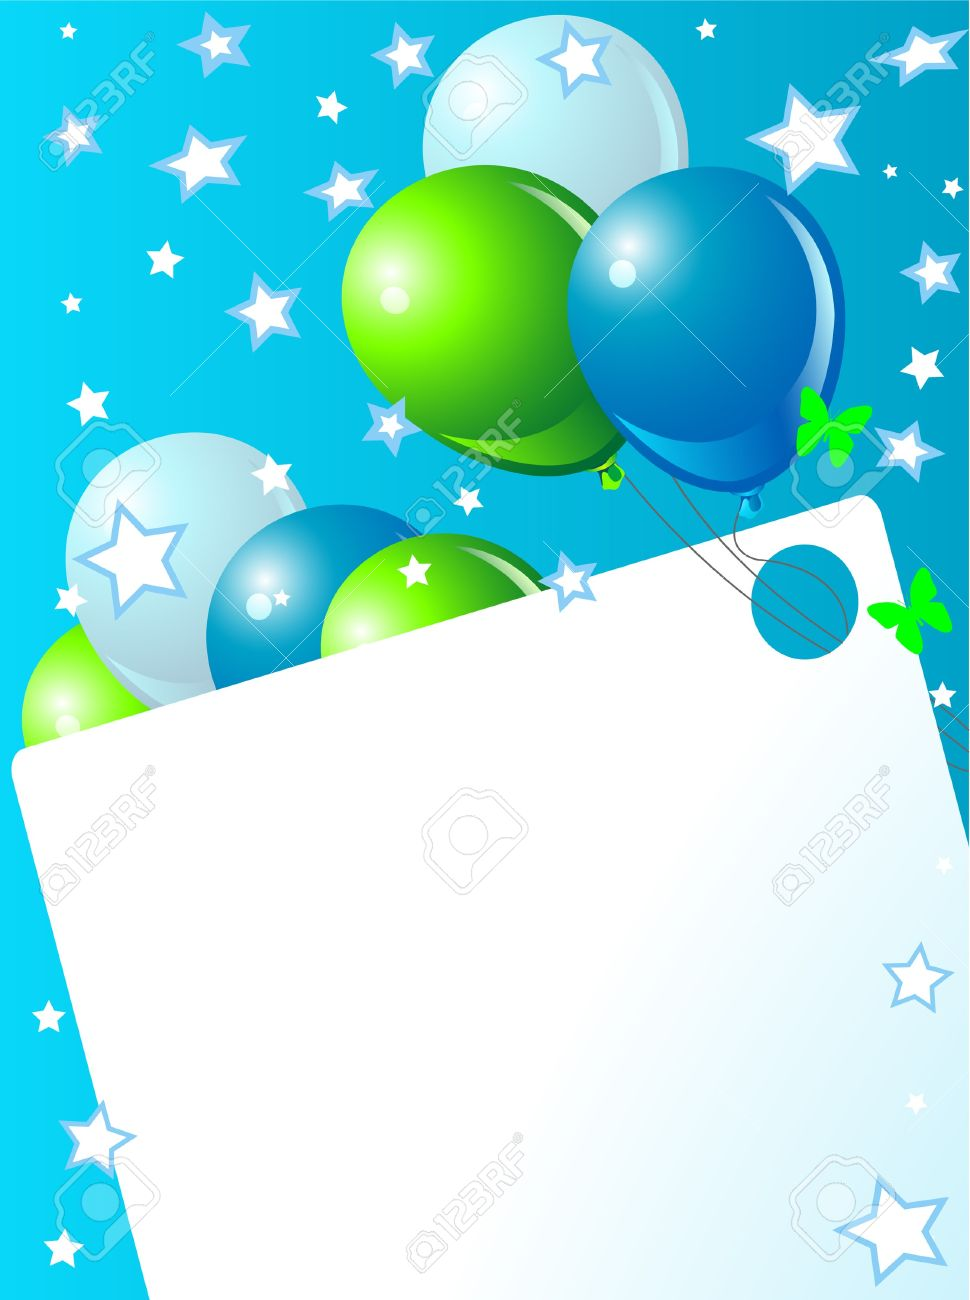 Green and blue balloons - Blue Birthday Card With Balloons Hat And Plenty Of Copy Space Stock Vector